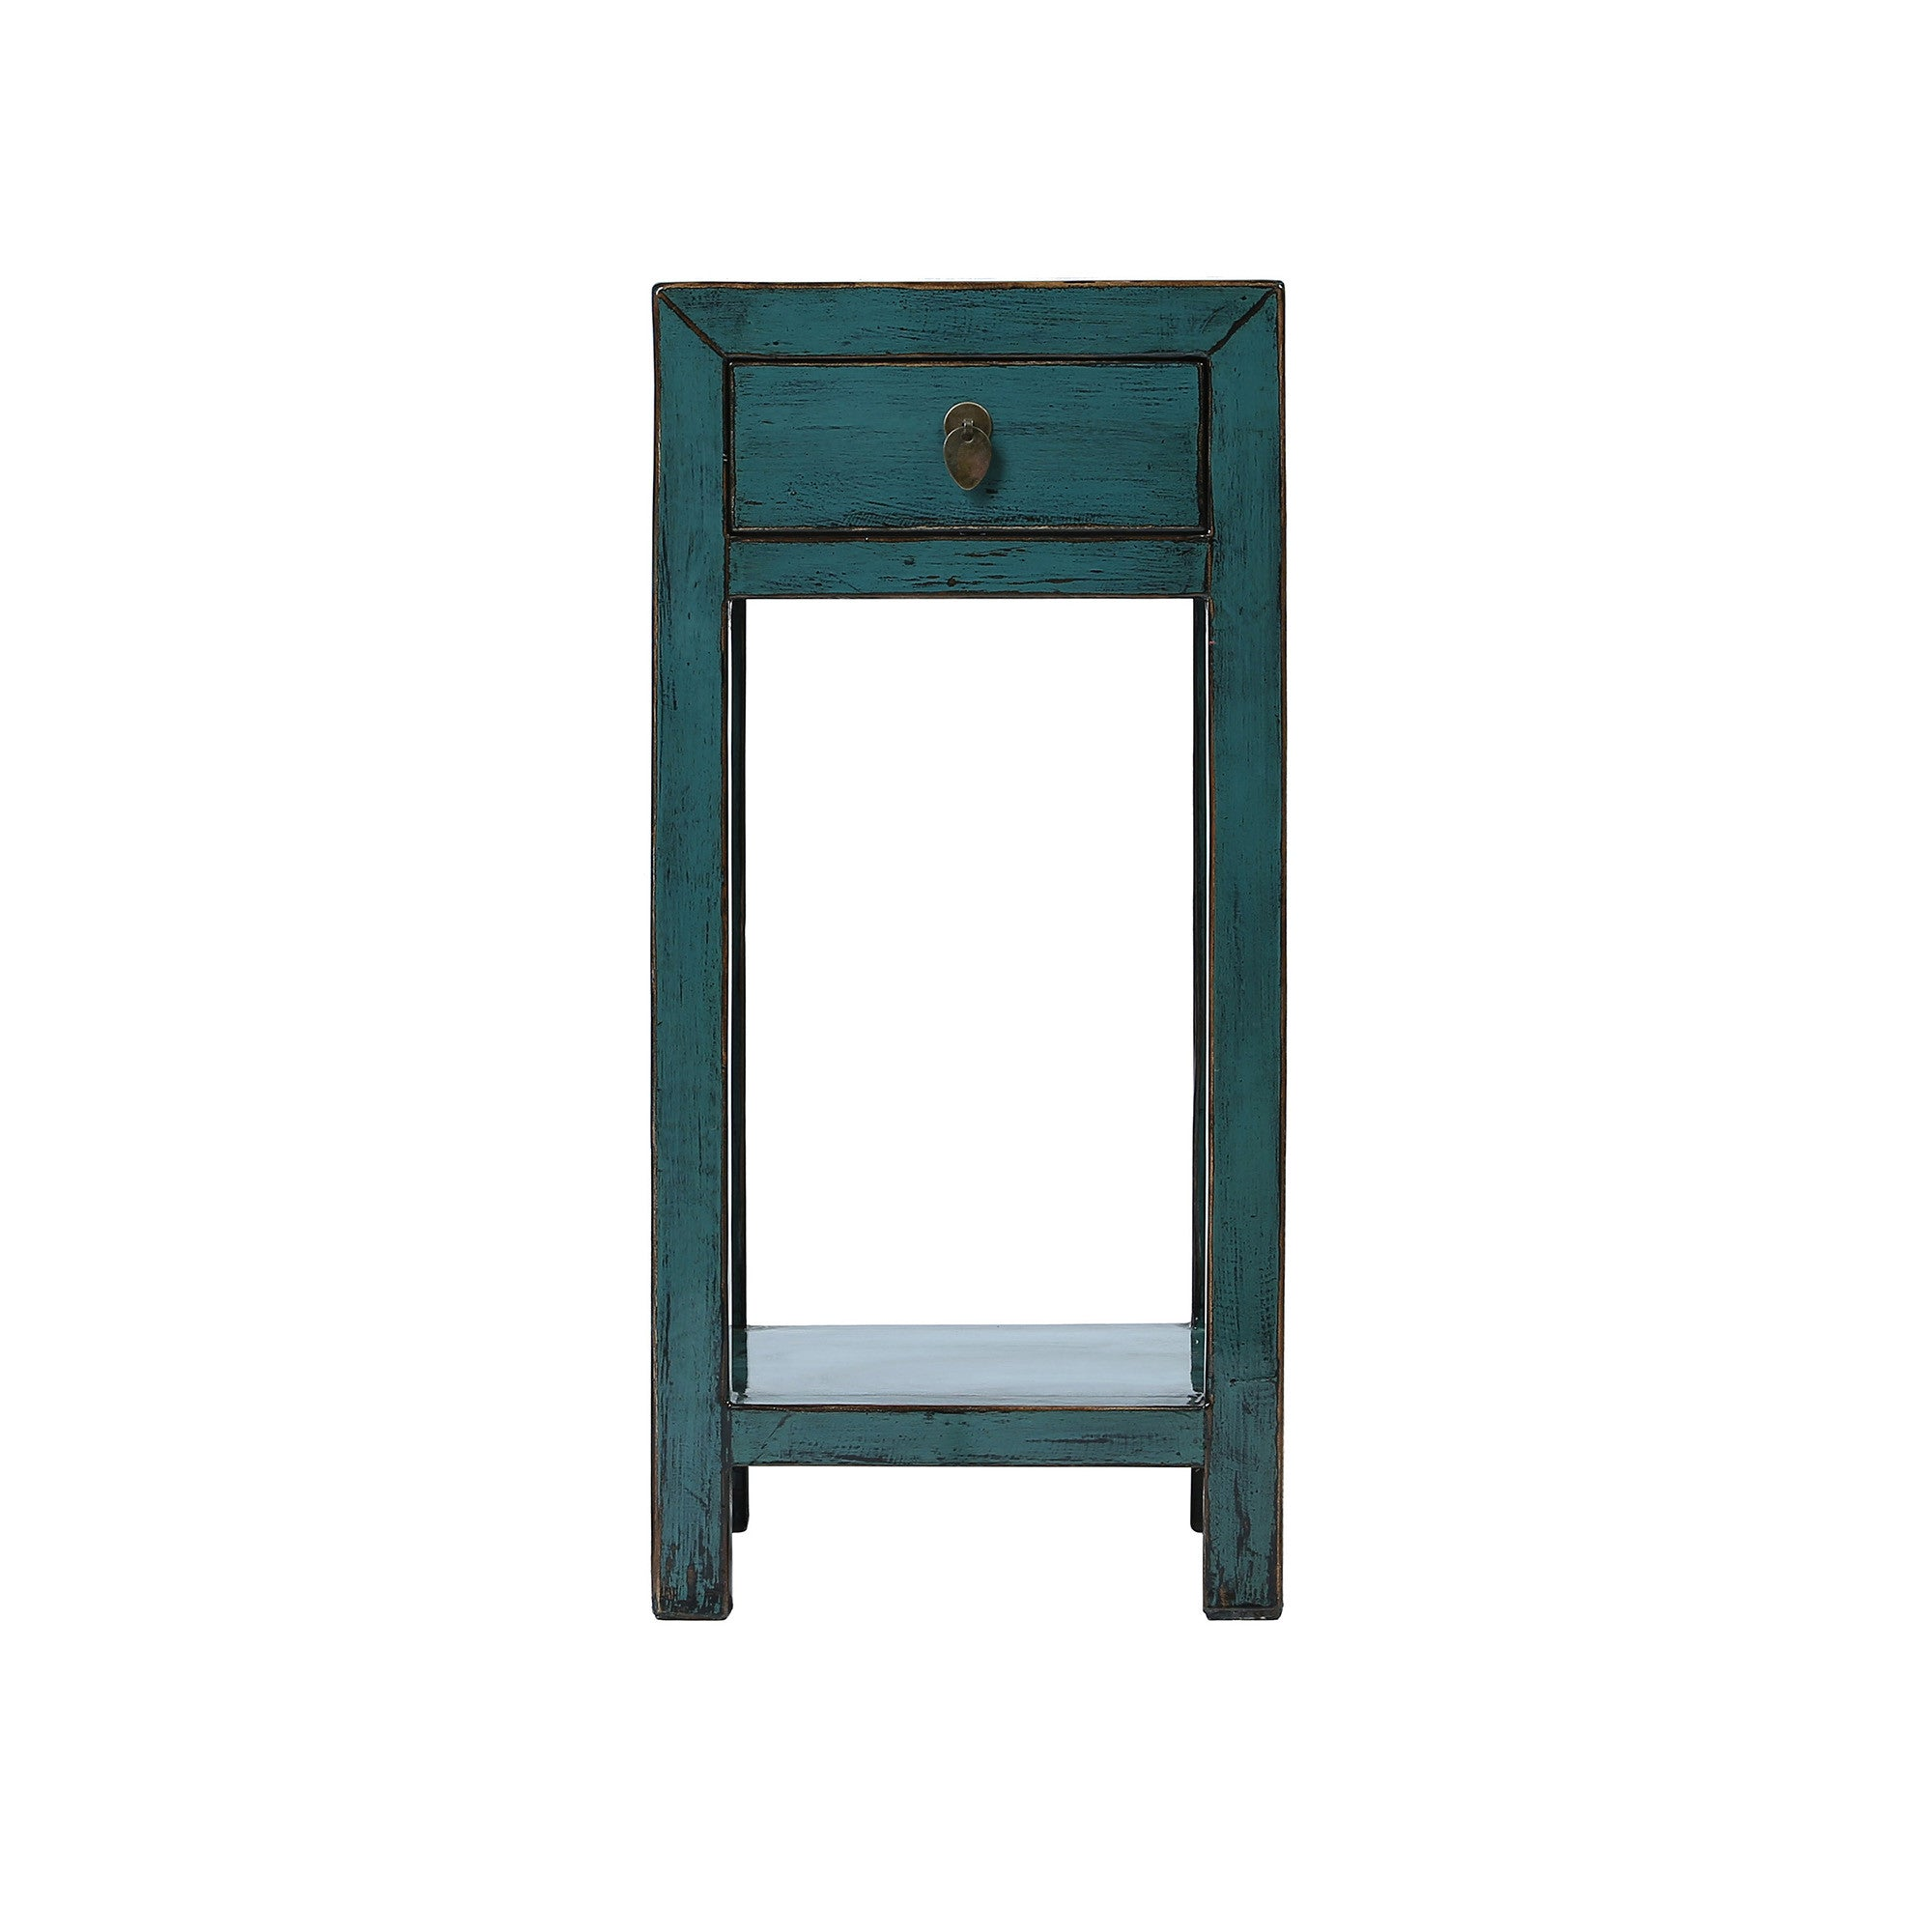 Square Blue Chinese Side Table with Shelf